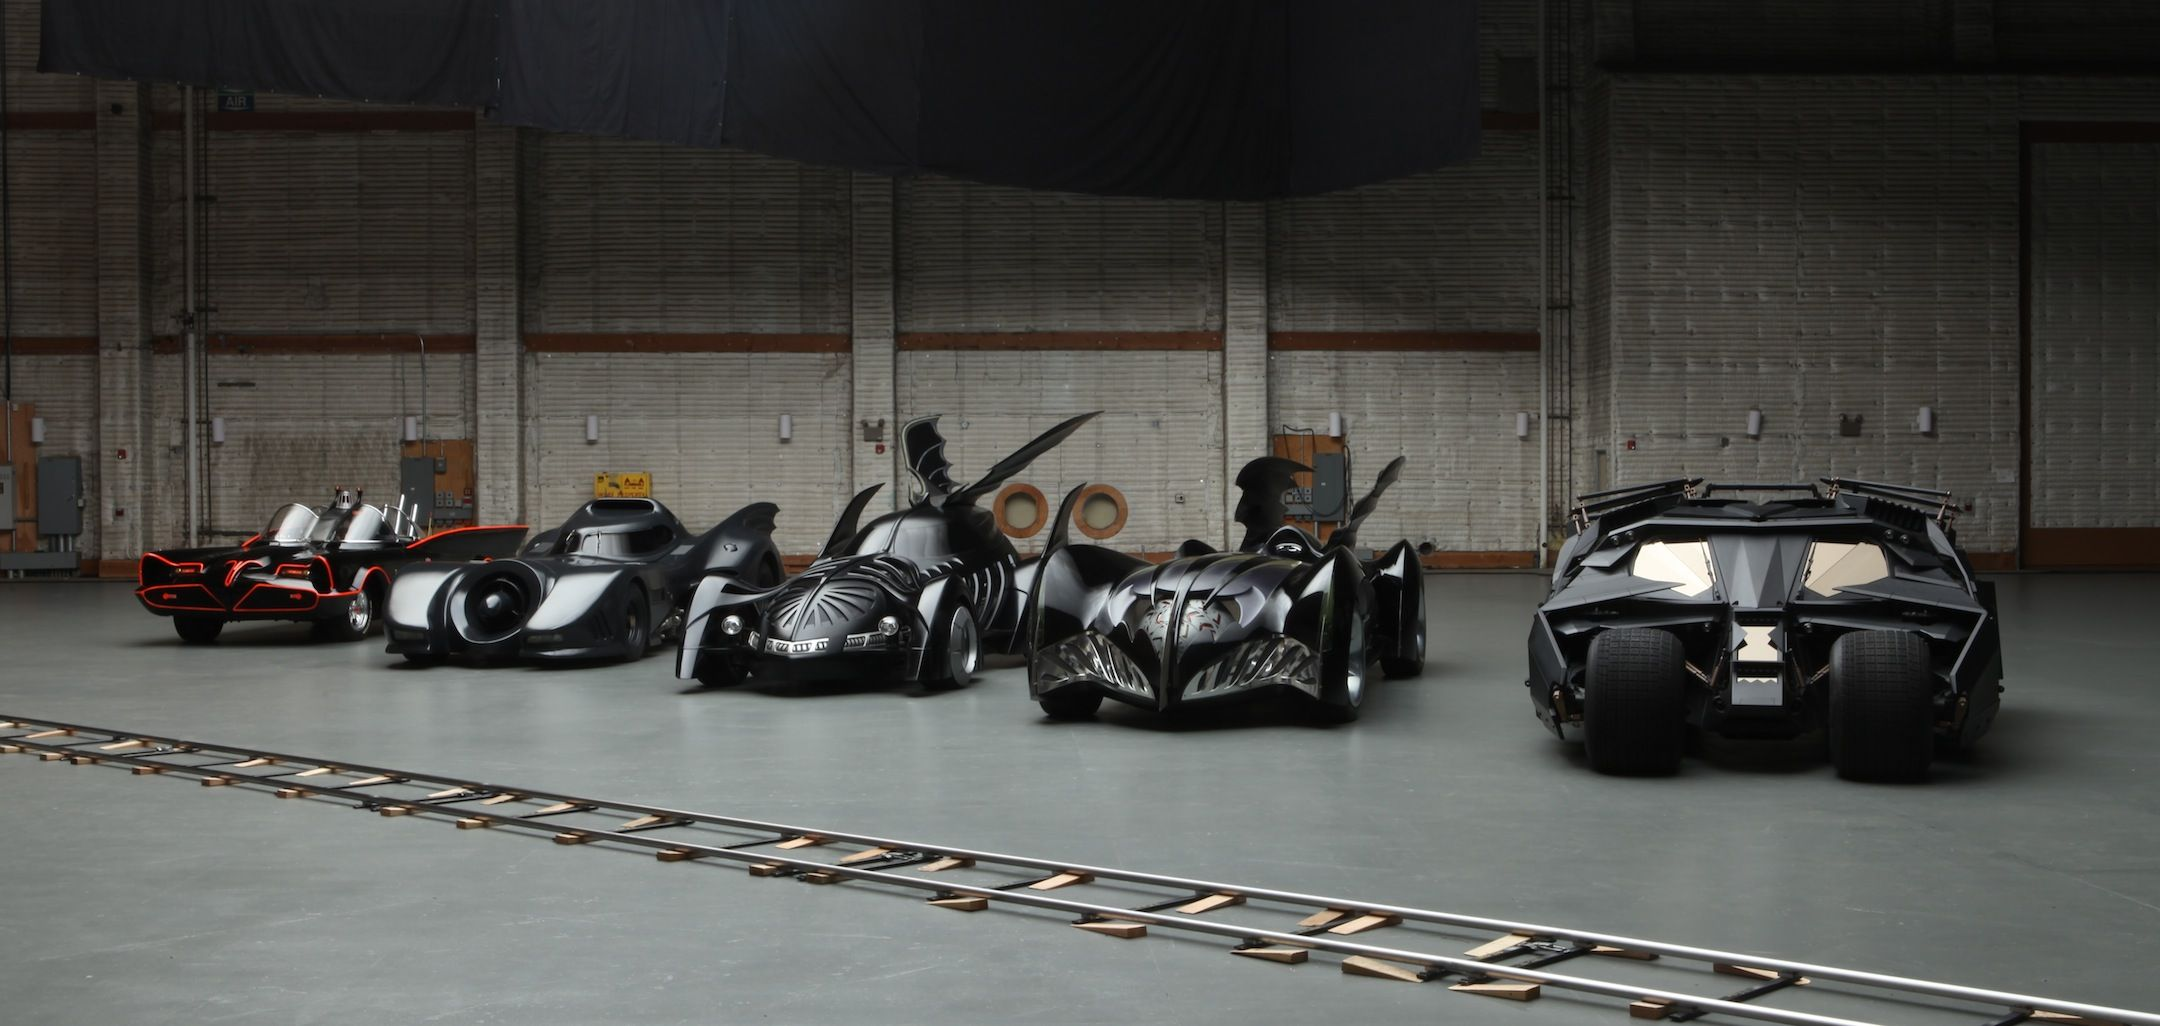 15 Awesome Facts You Didn't Know About The Batmobile